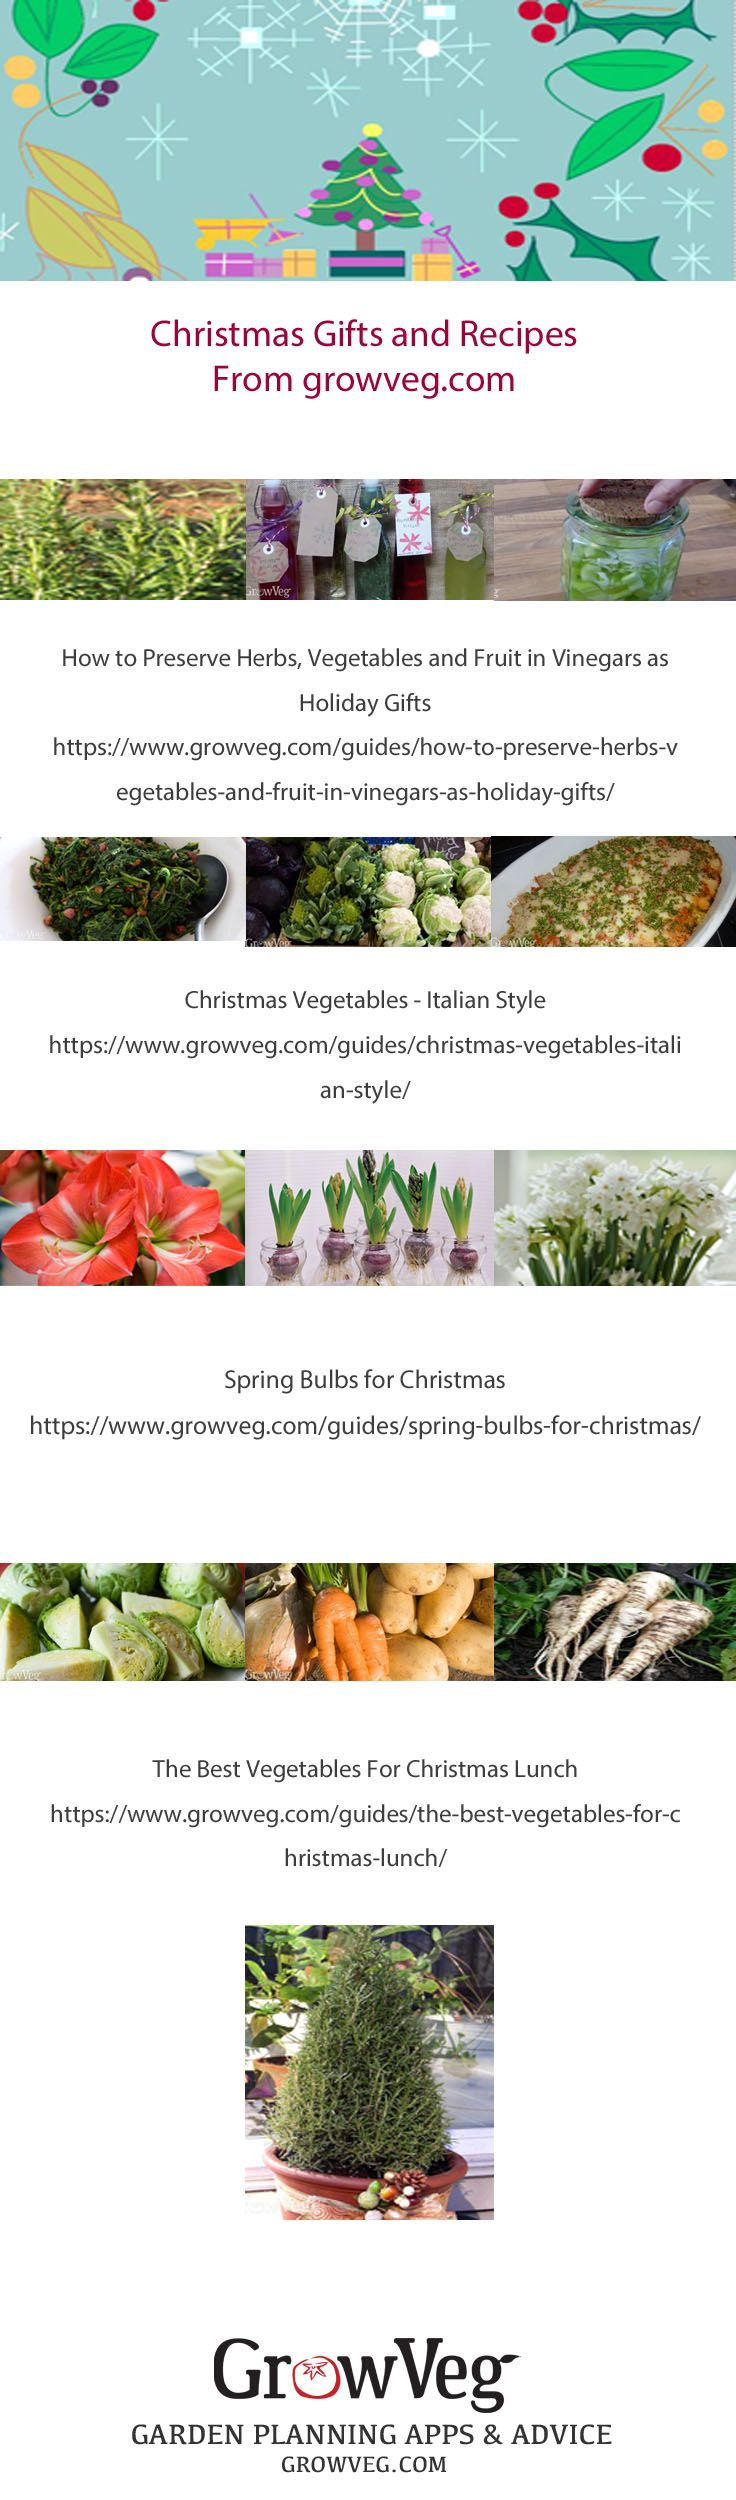 443 best love mediterranean gardening images on pinterest flower a collection of fruit and vegetable recipes and gifts inspired by our love of growing our forumfinder Image collections